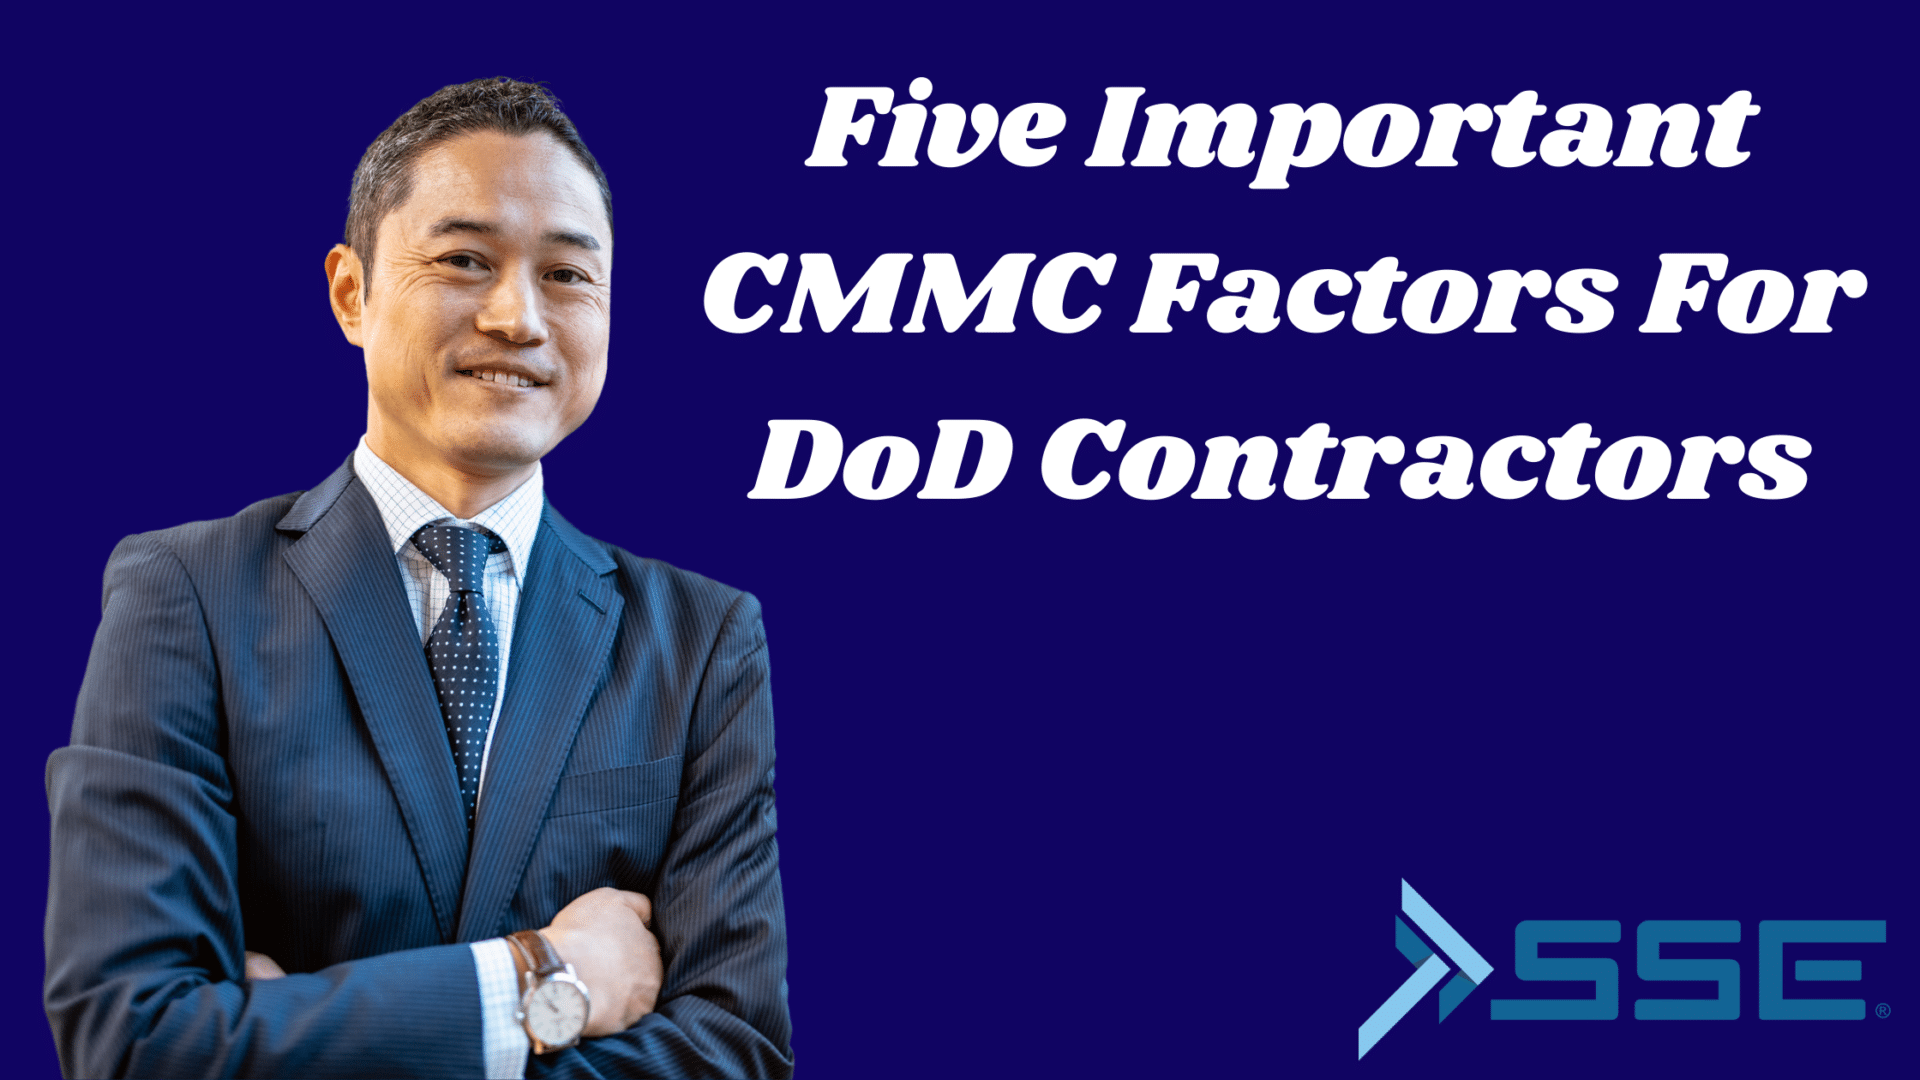 Five Important CMMC Factors For DoD Contractors